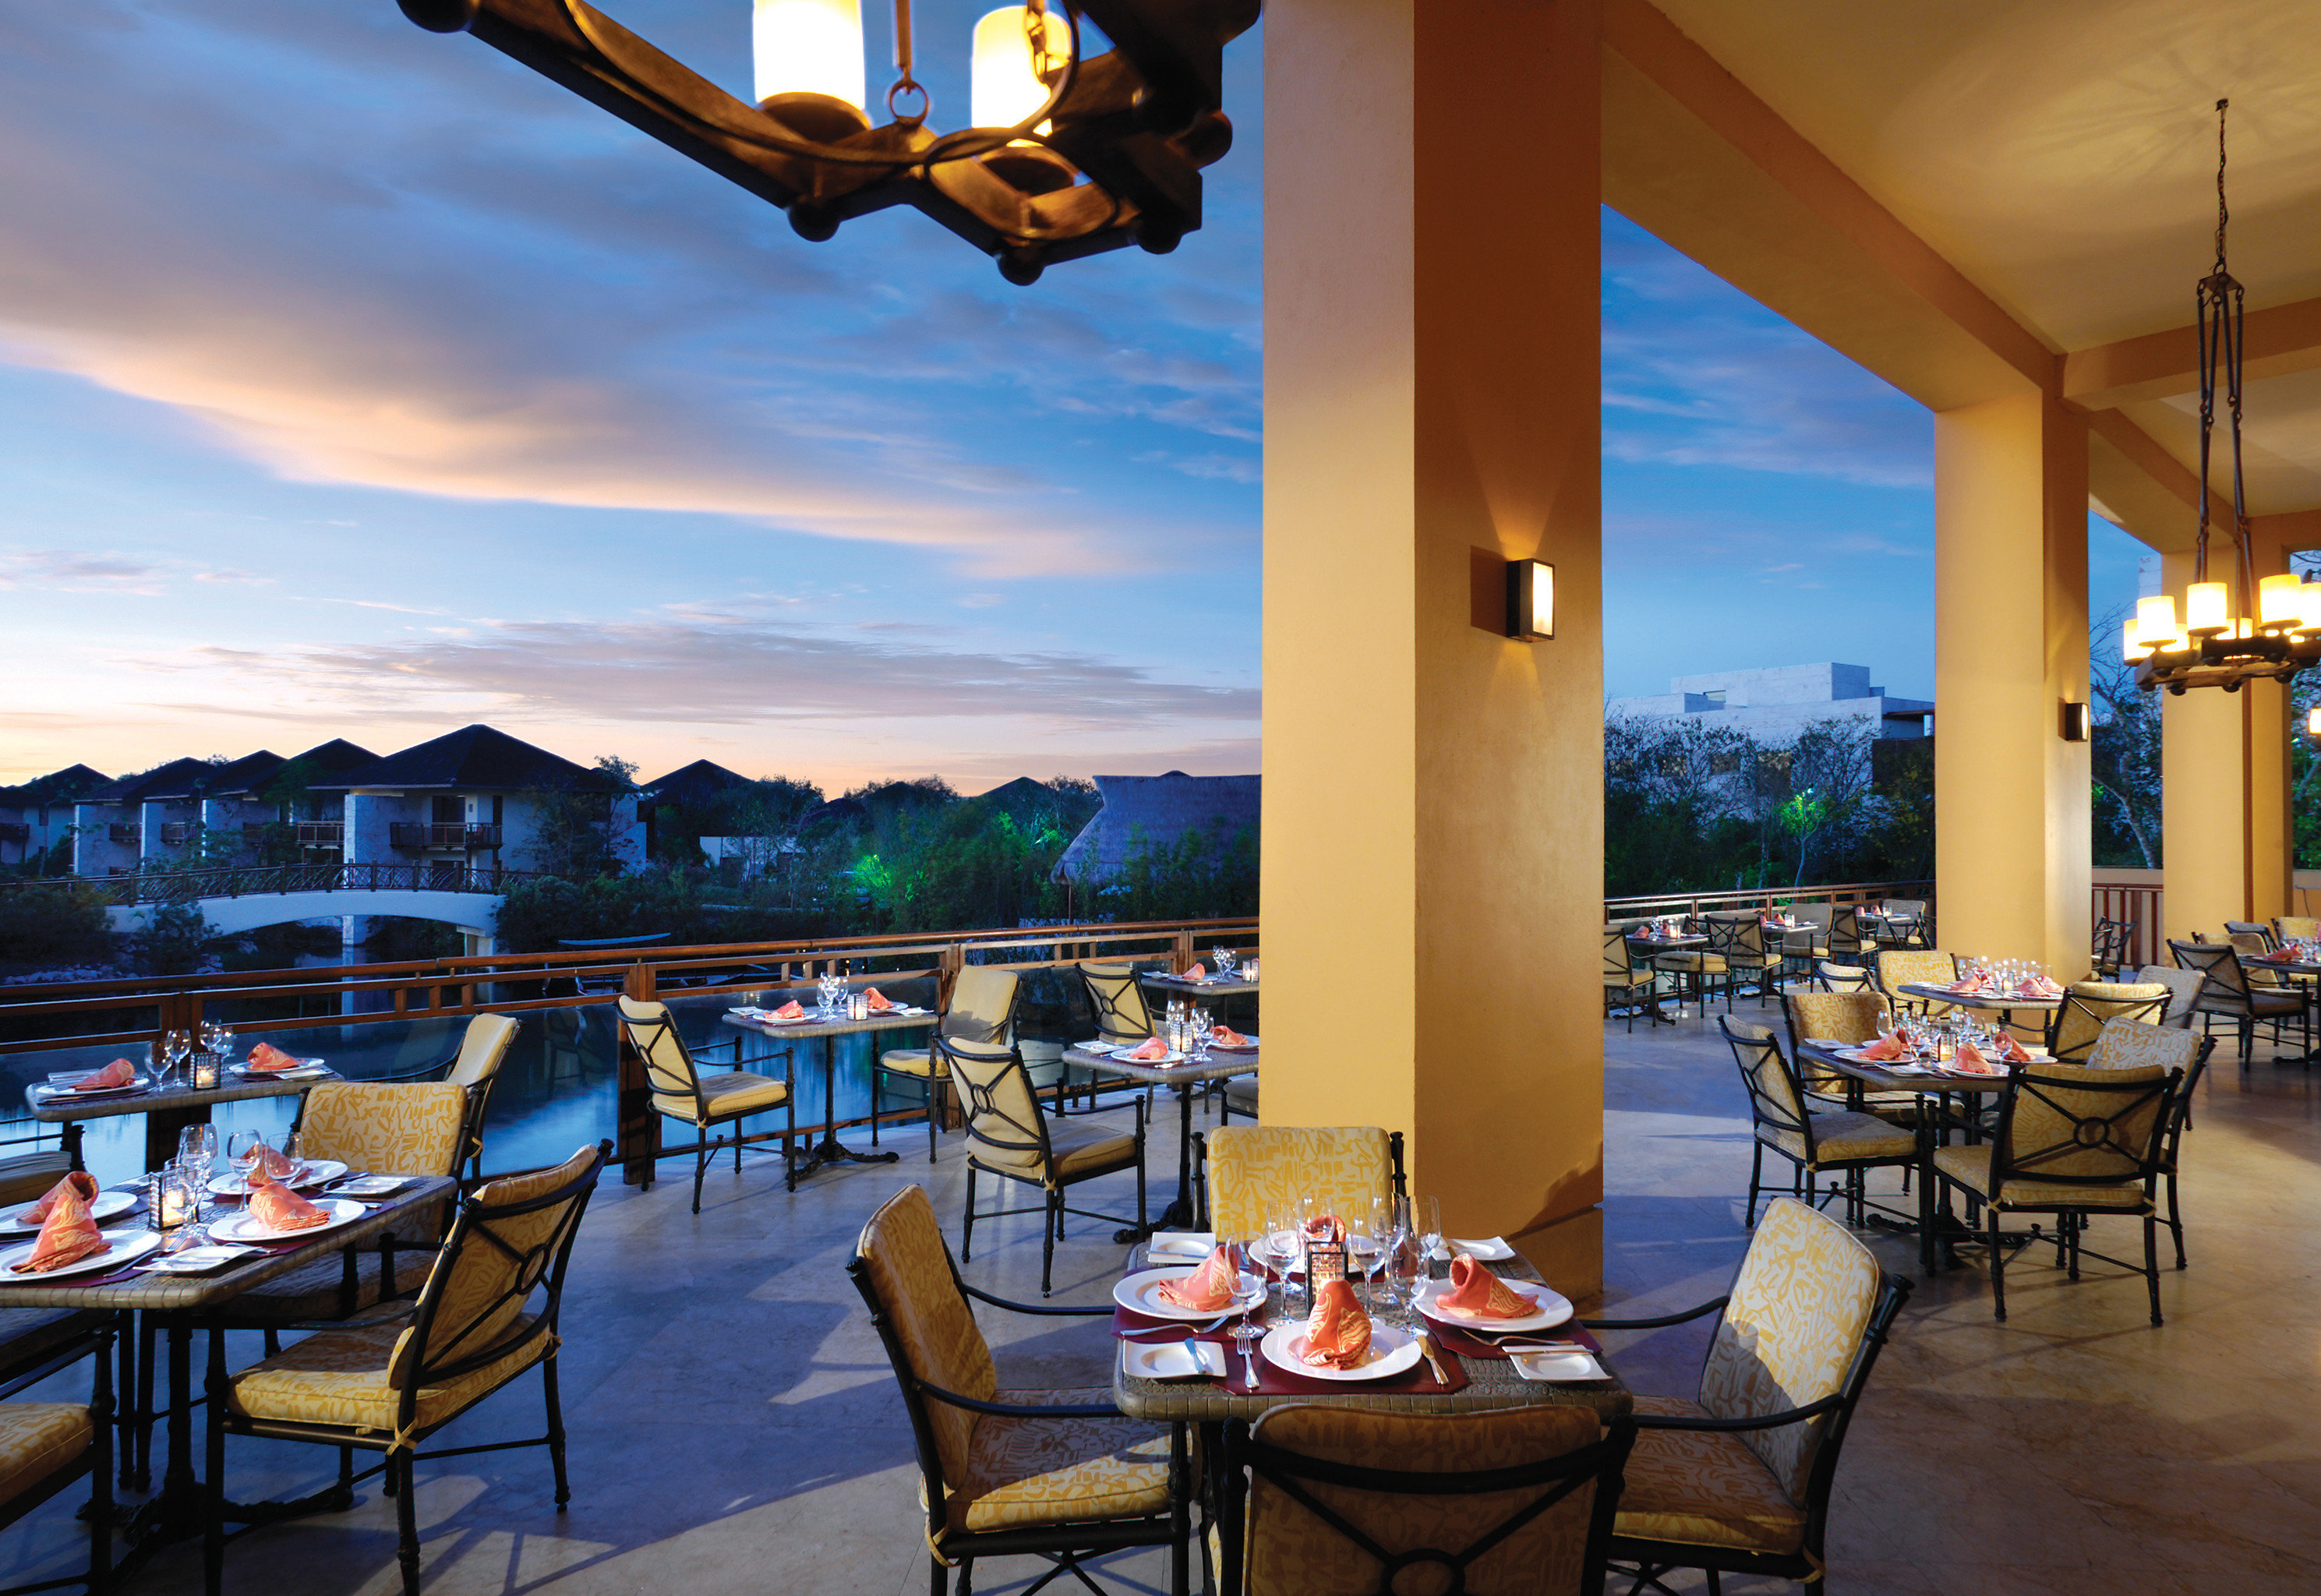 All-Inclusive Resorts Beachfront caribbean Dining Drink Eat Family Family Travel Hotels Resort sky table chair floor indoor restaurant estate vacation Villa set furniture